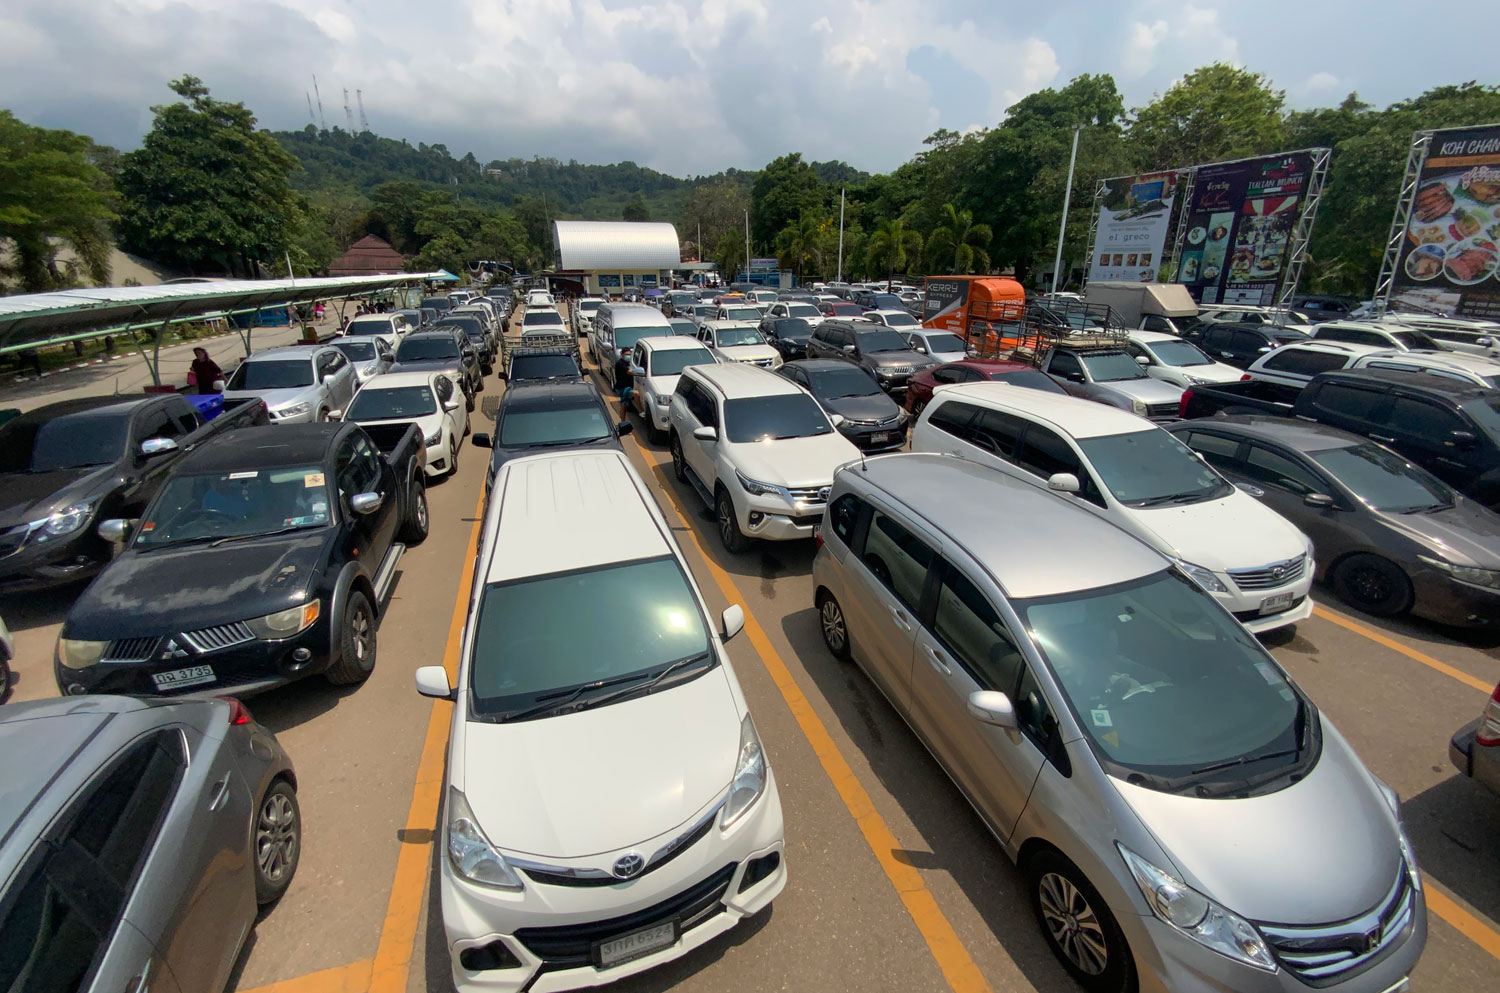 Traffic is heavy on the road leading to the Ao Thammachart ferry pier in Laem Ngop district of Trat as tourists flock to Koh Chang on Saturday. (Photo: Jakkrit Waewkhraihong)